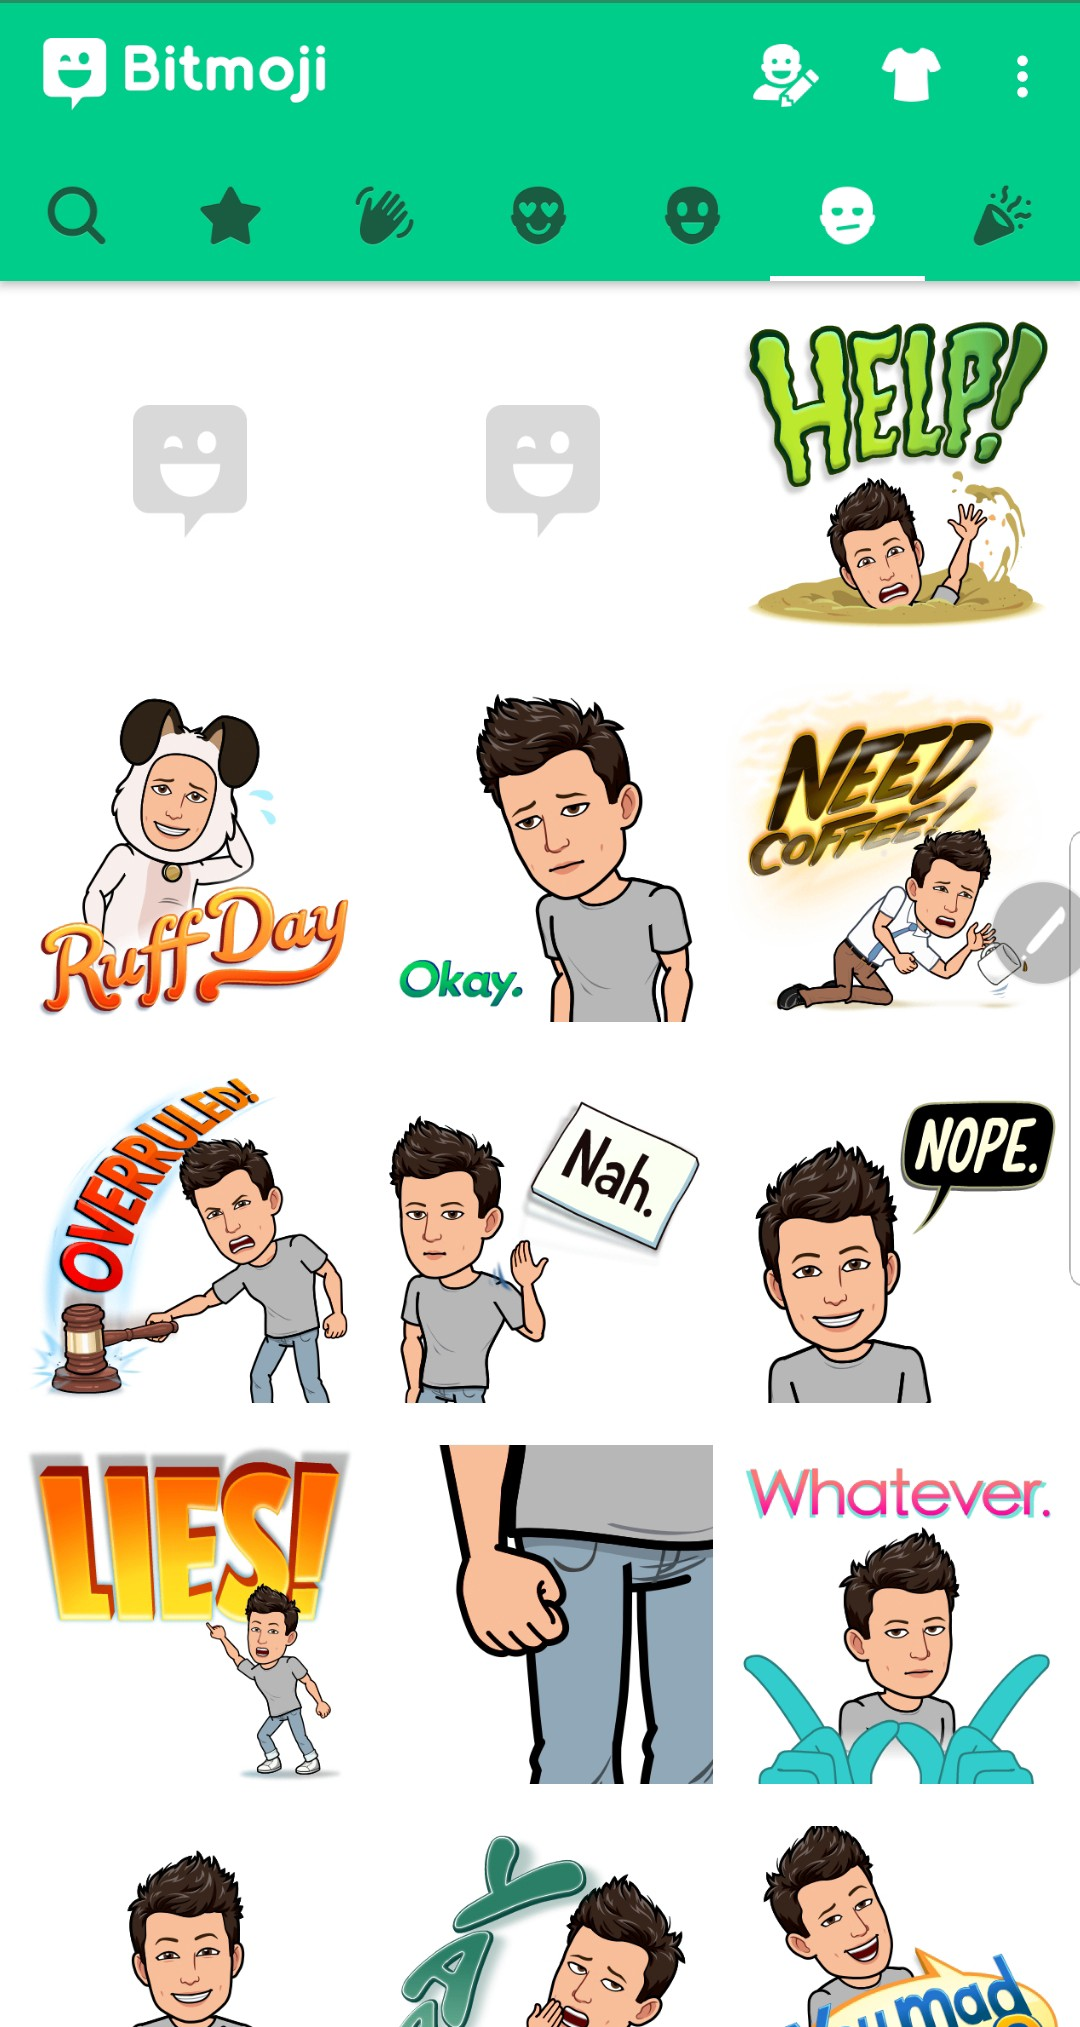 3be179ad290 Once you have given Bitmoji some idea about how you look, you can then  select a number of characteristics in the style of your visible identity.  This ...